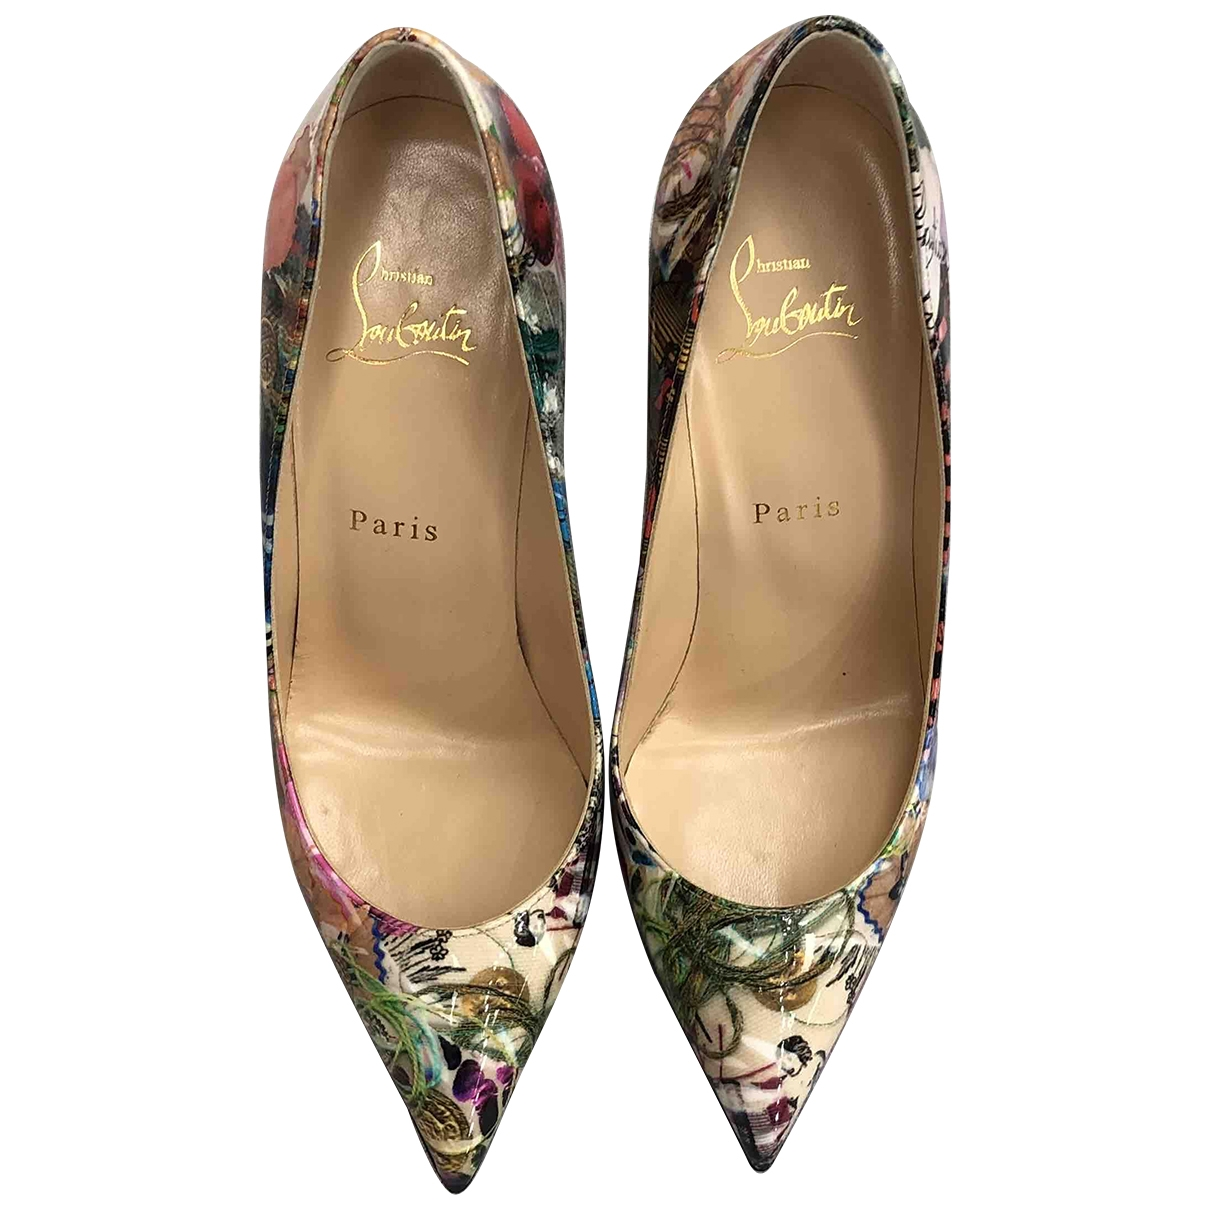 Christian Louboutin Pigalle Multicolour Patent leather Heels for Women 38 EU